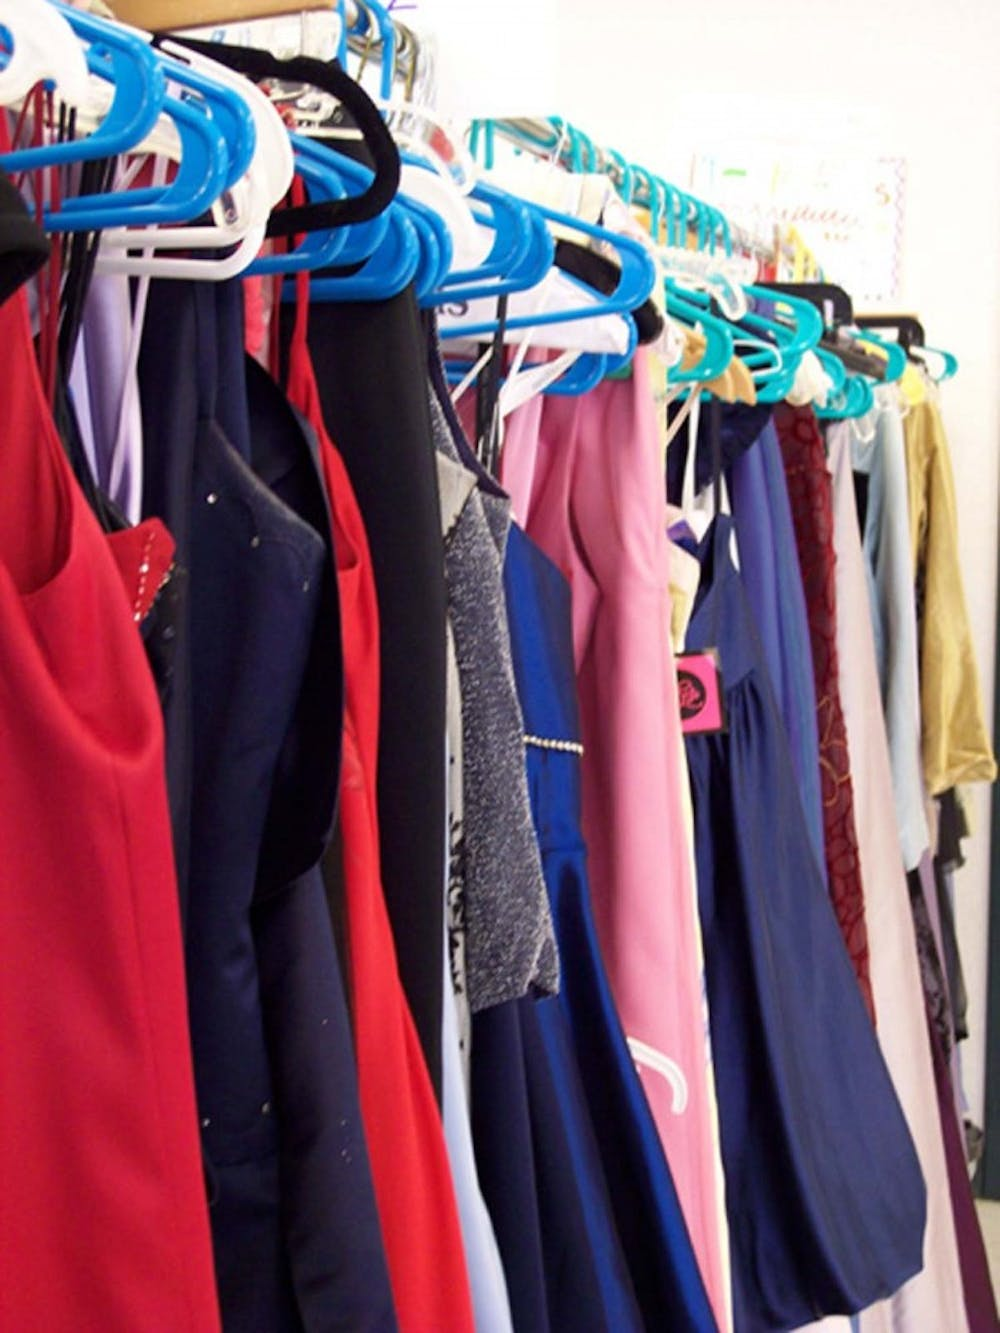 Time to get rid of your old prom dresses and support a good cause